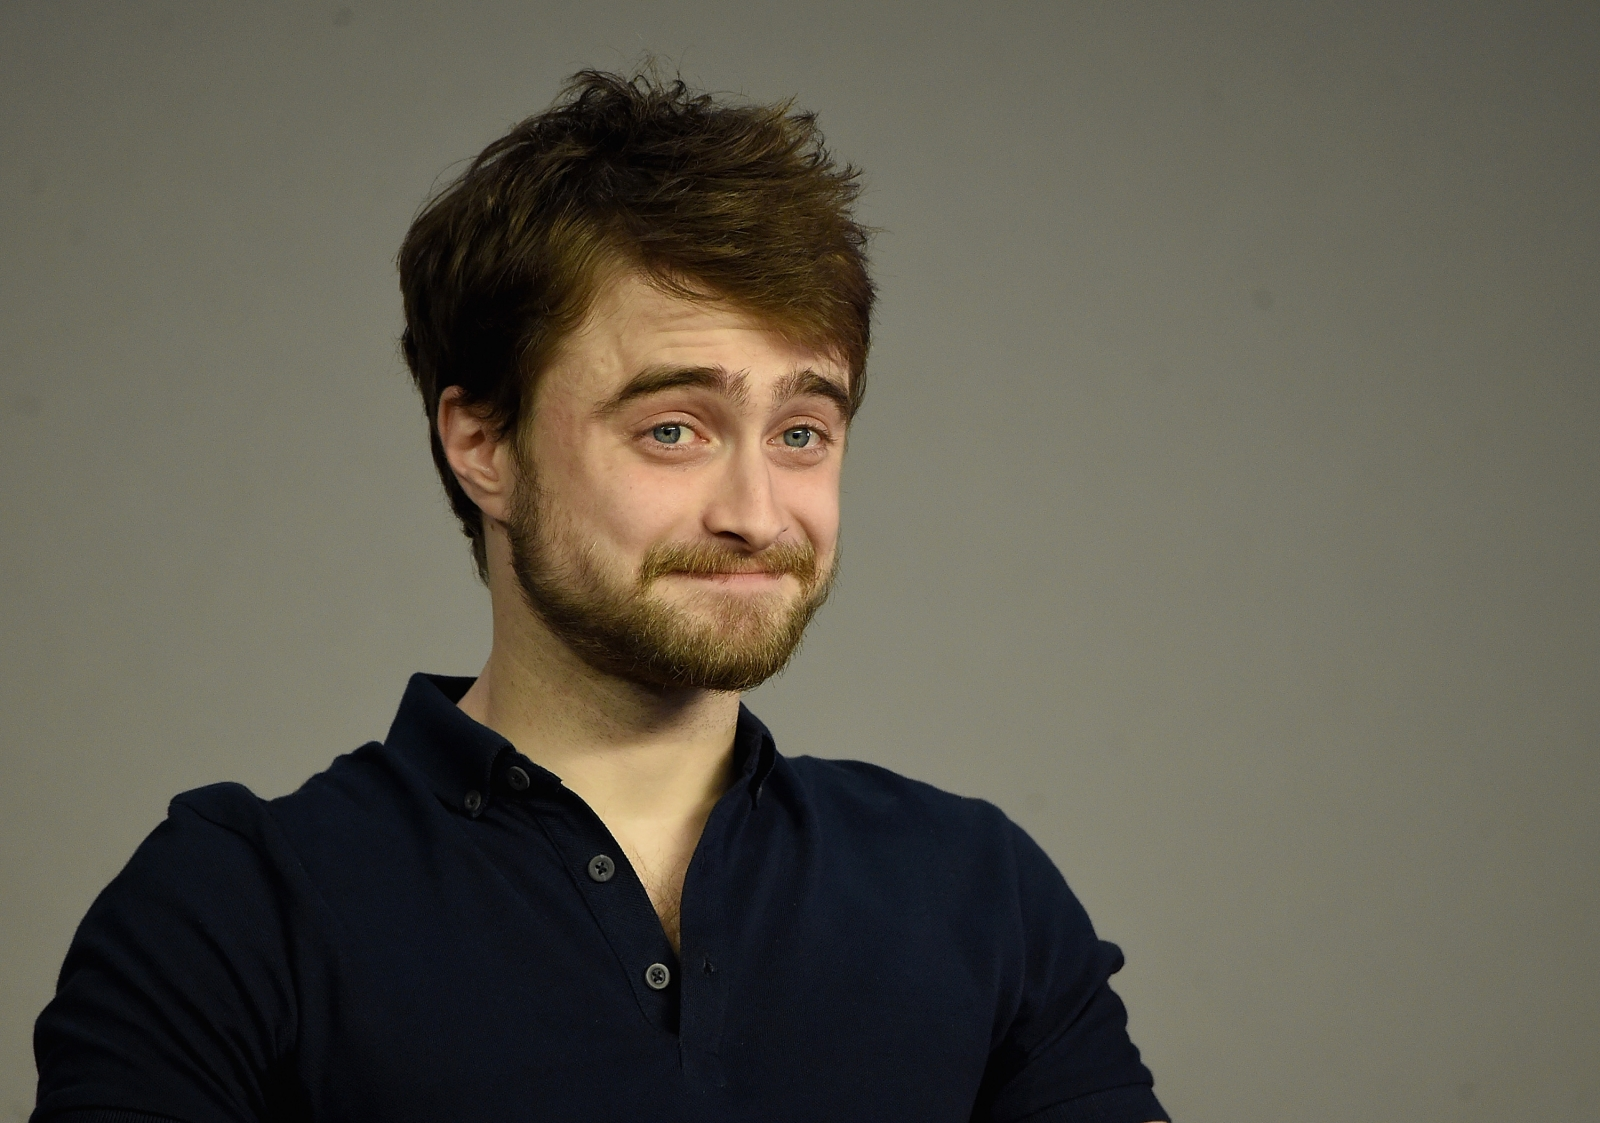 Daniel Radcliffe On Harry Potter Reboot I M Leaving Room To Backtrack